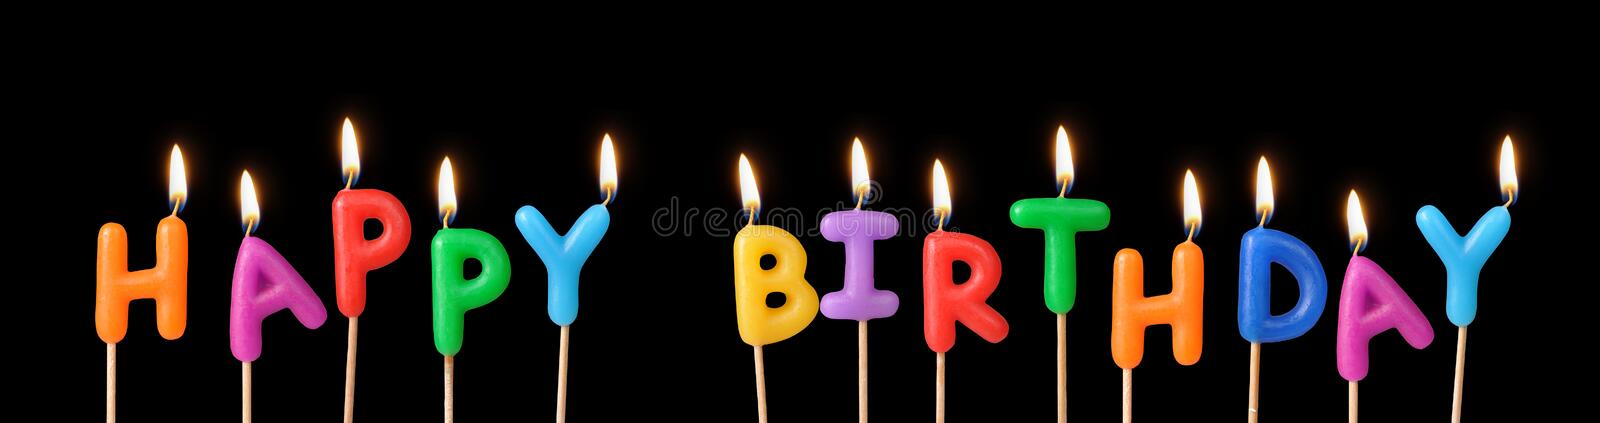 Happy birthday candles. A photo of happy birthday candles on black background stock photo